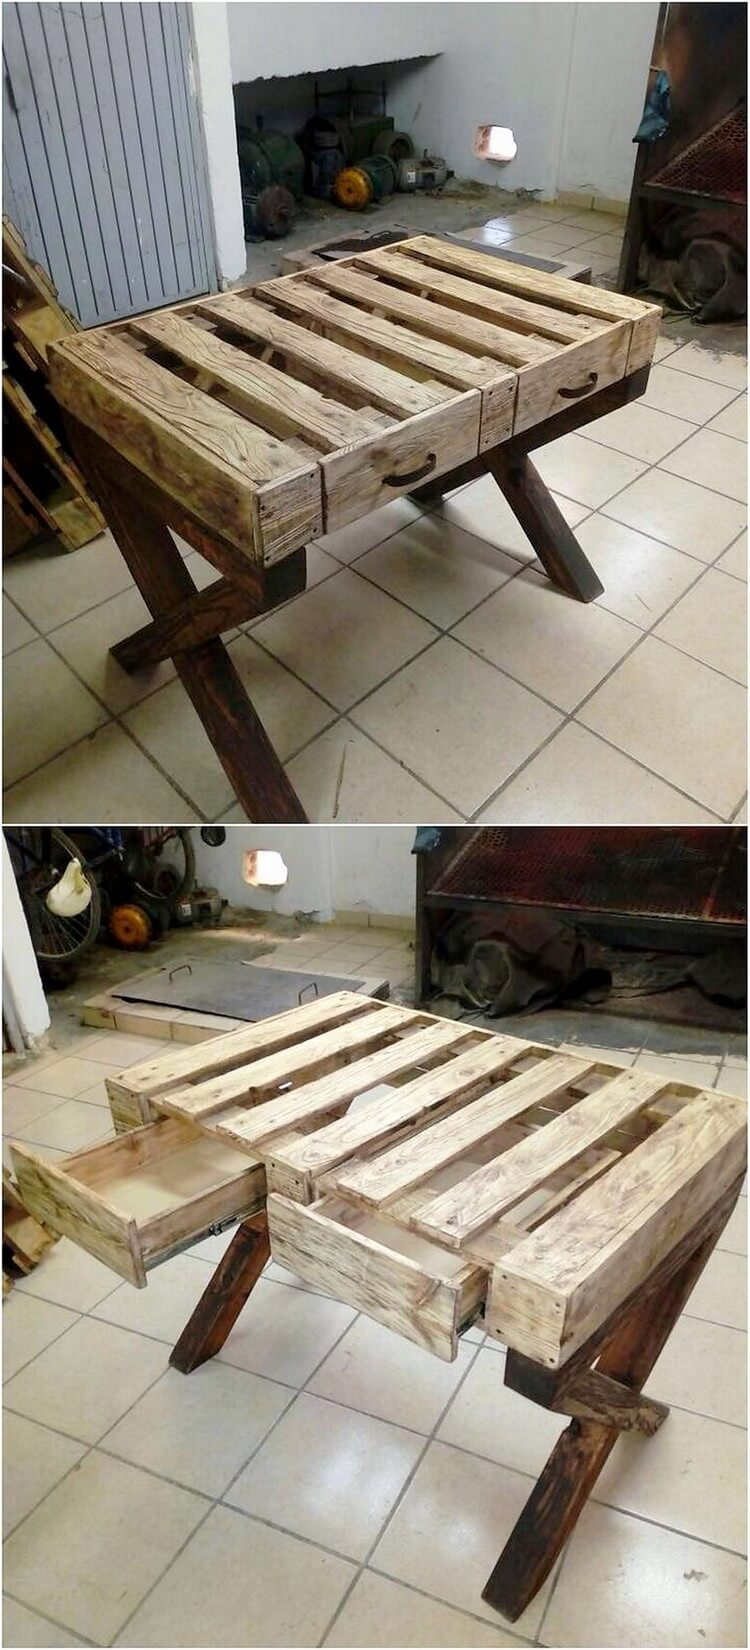 Pallet Table with Drawers